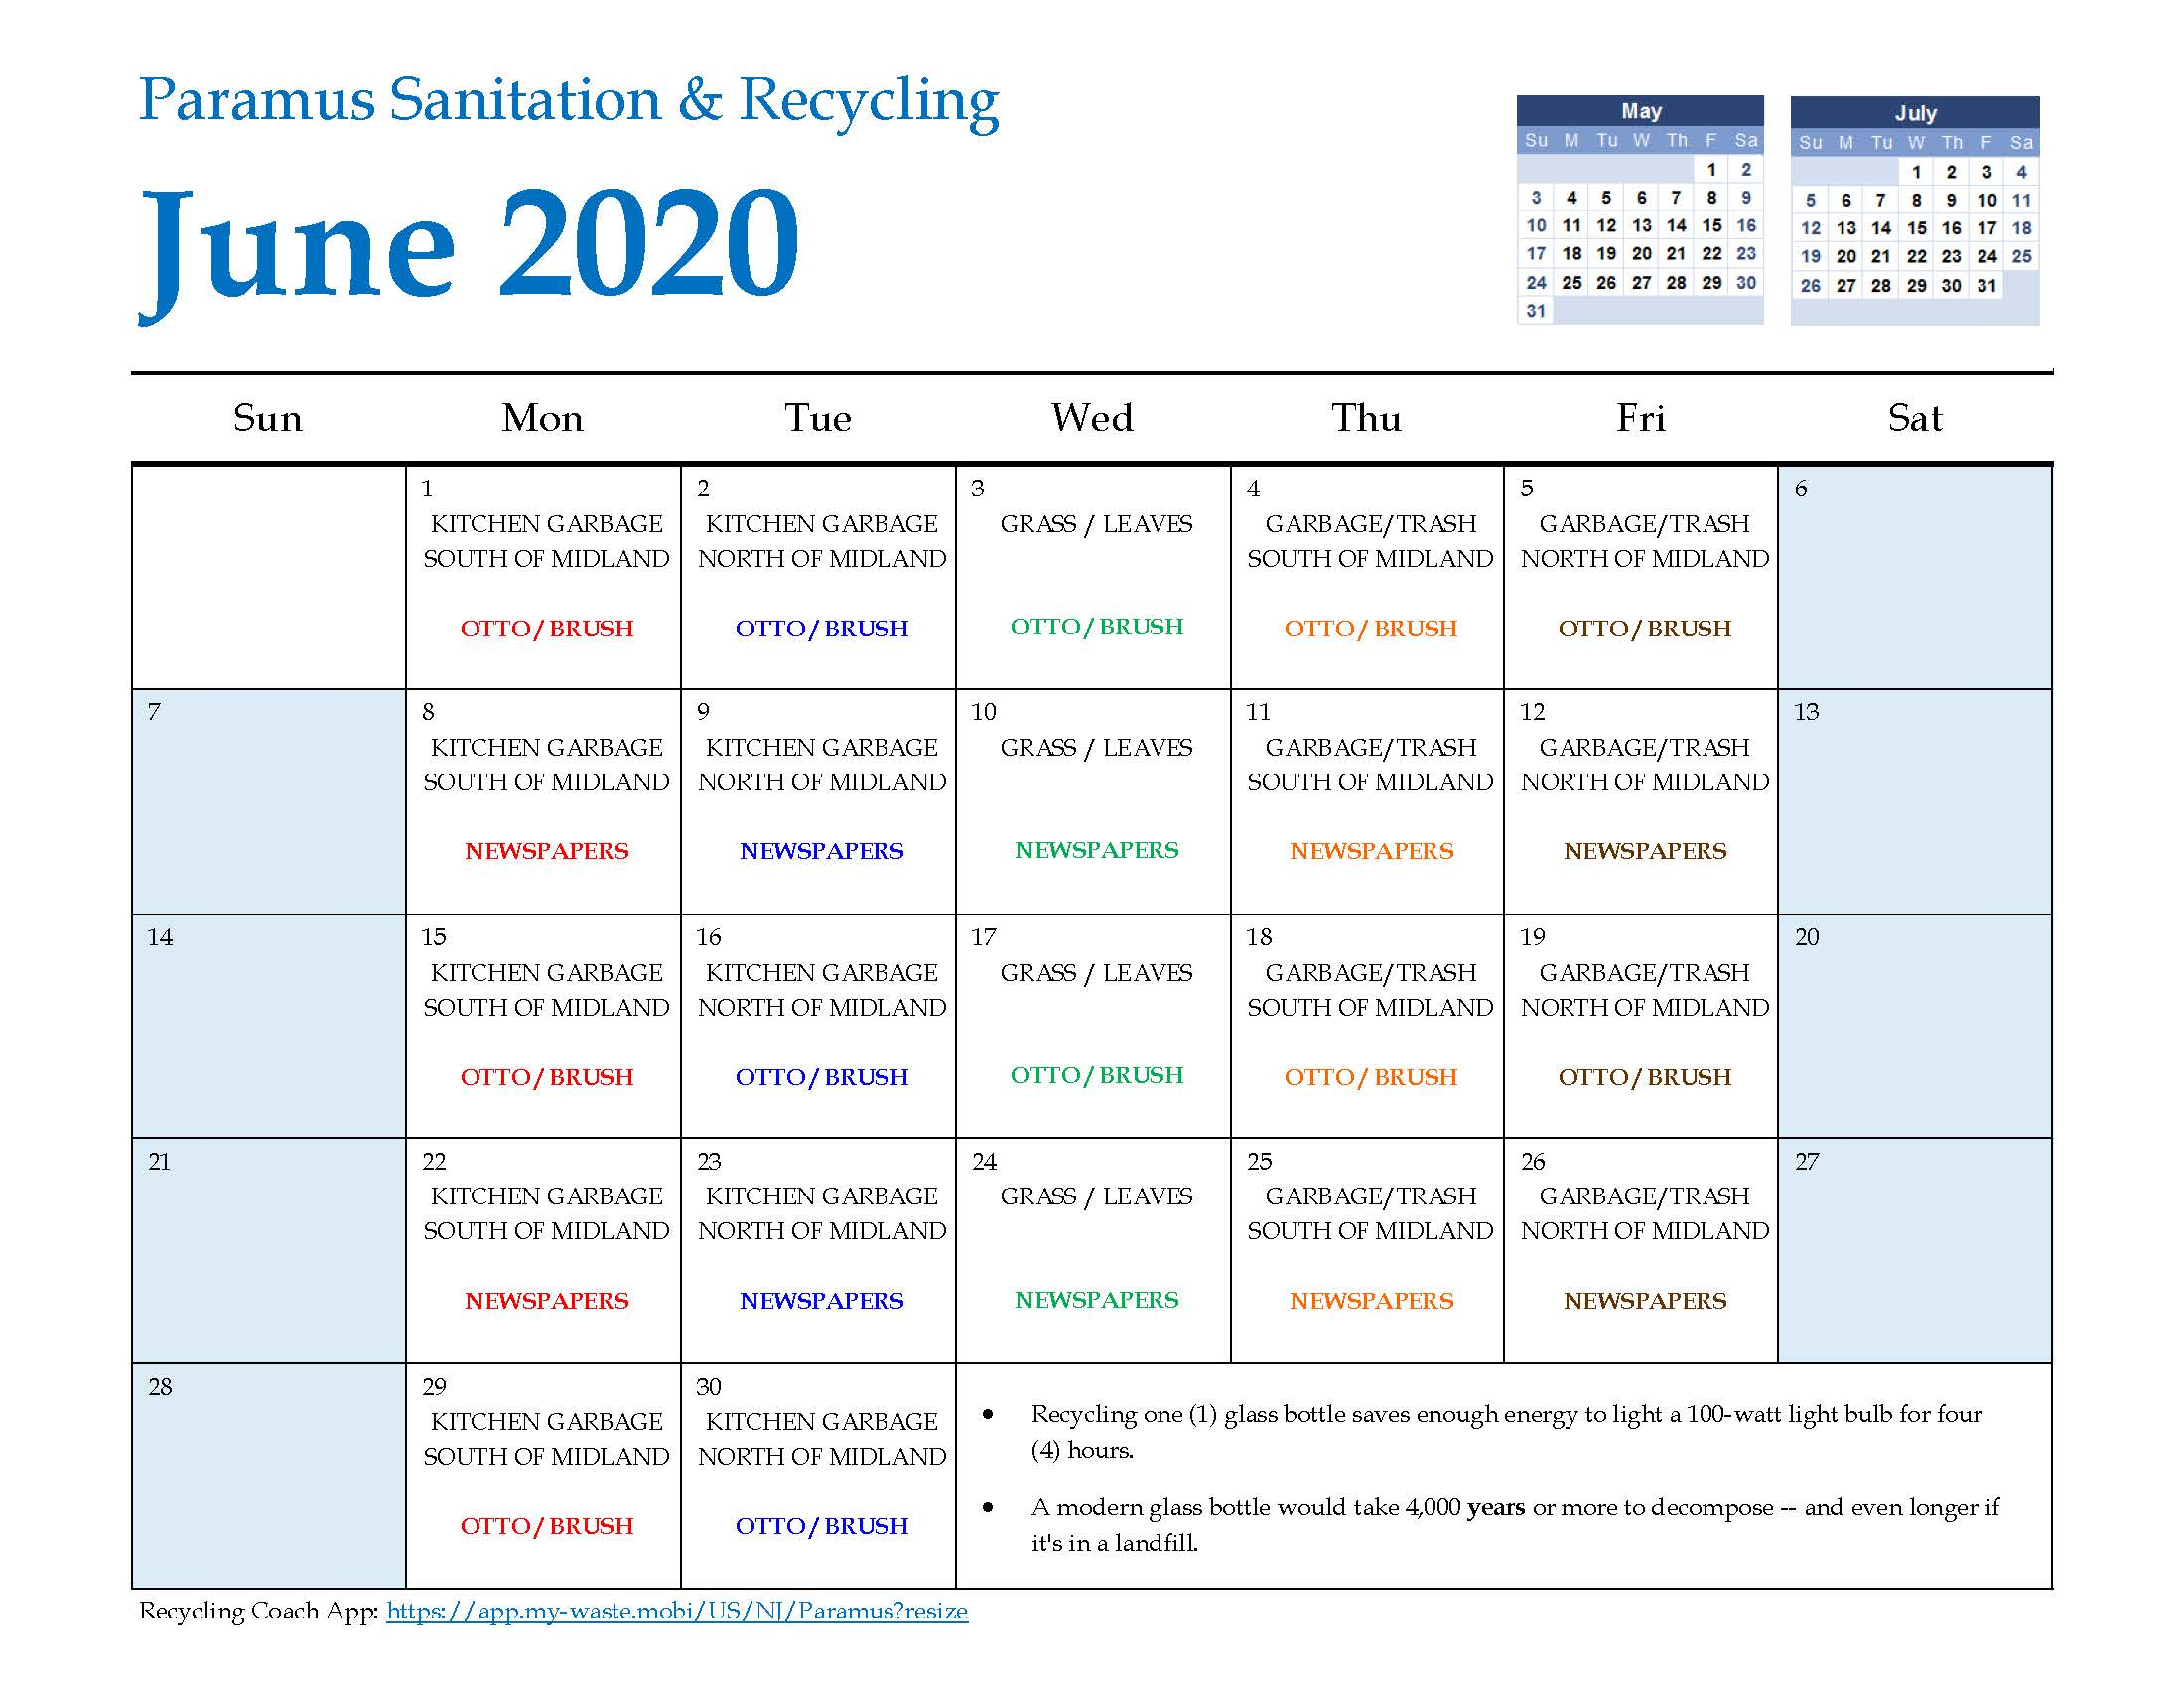 2020 Paramus Recycling Calendar June